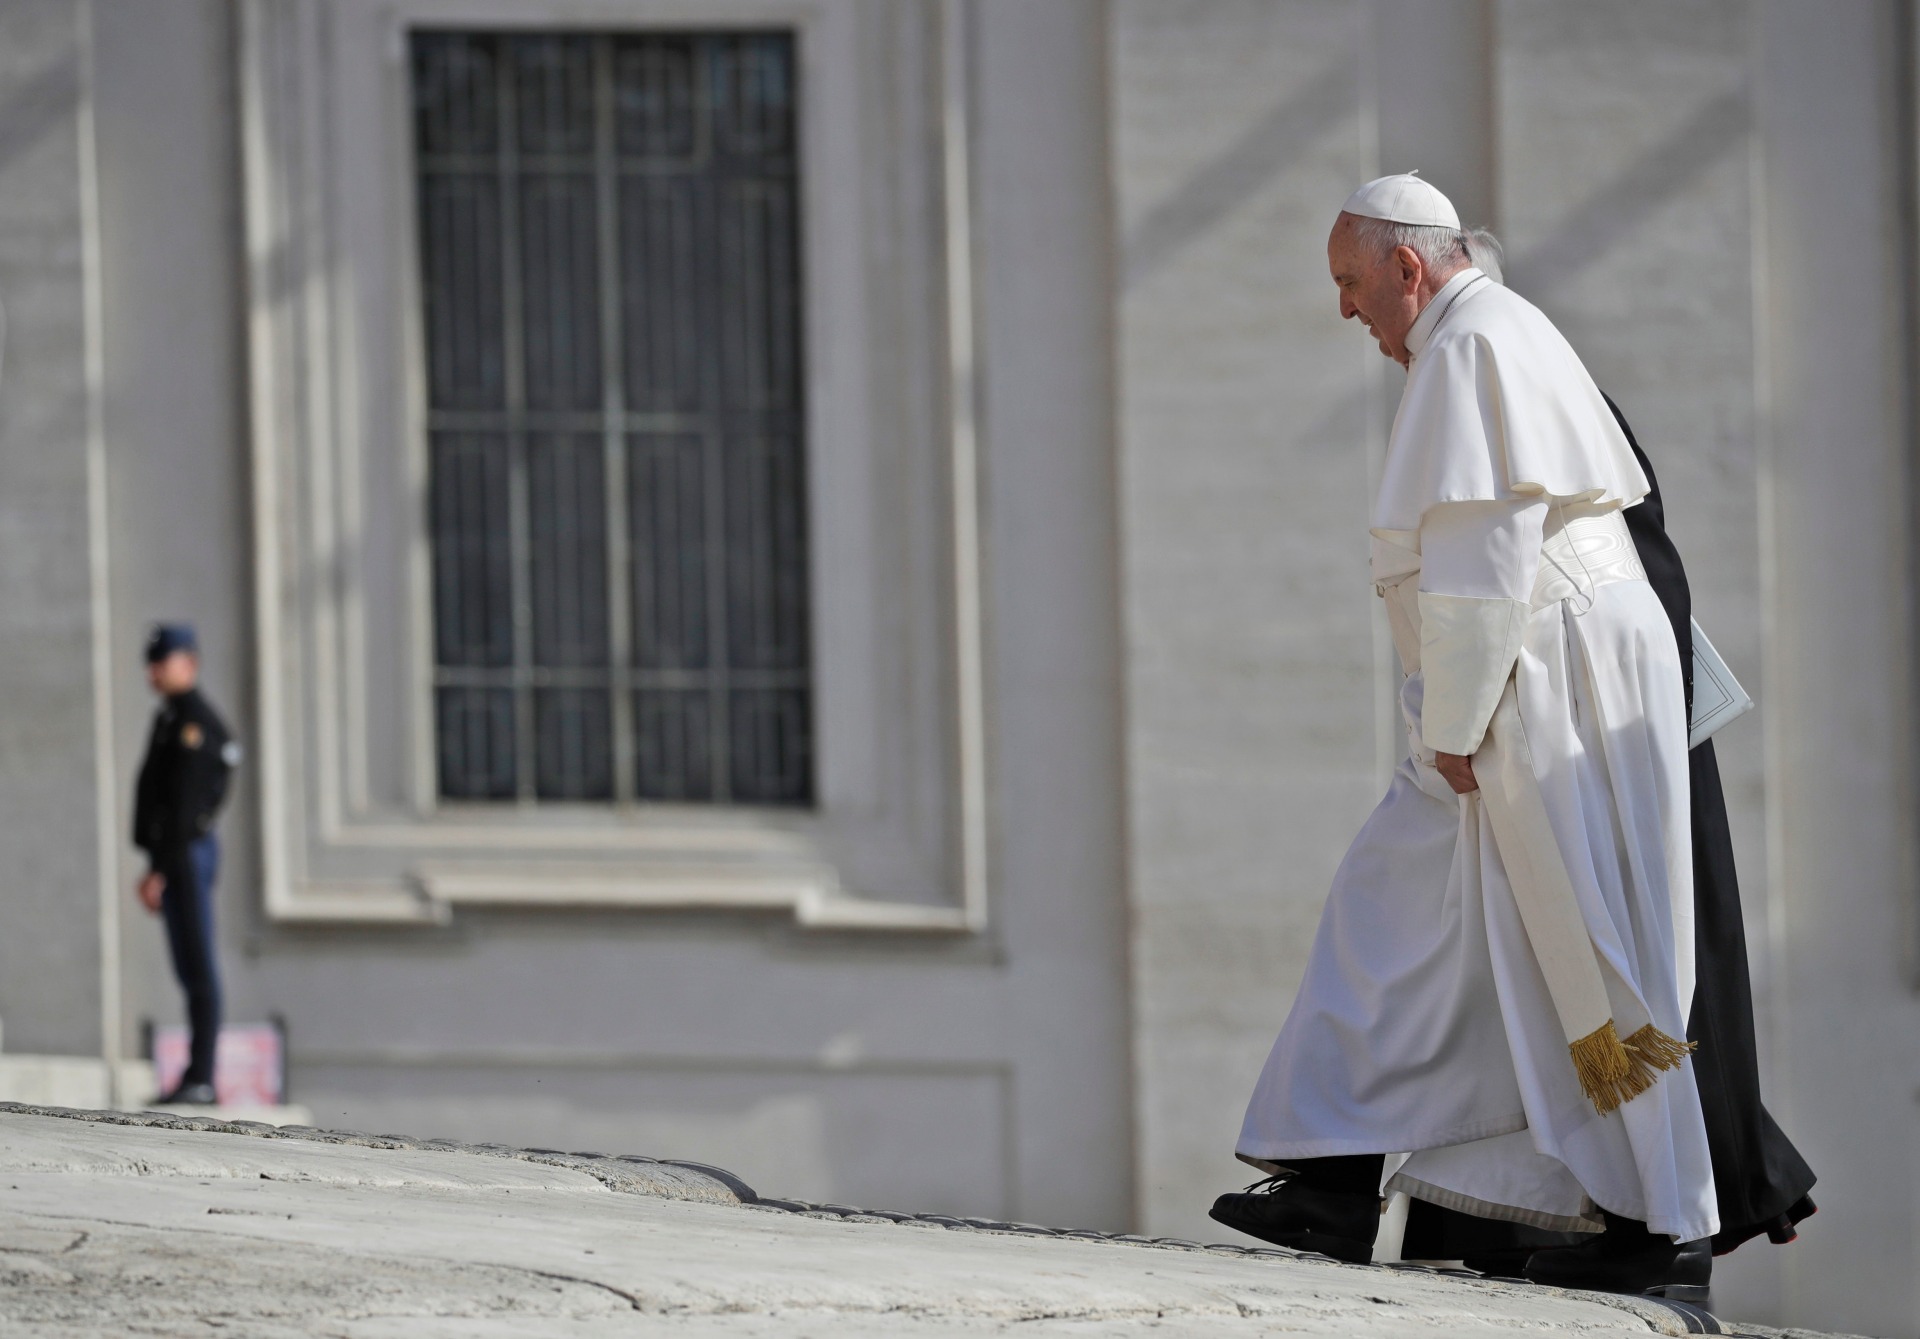 Westlake Legal Group ContentBroker_contentid-18a1dc7b986a4c5ca07220868fb22479-1 Pope tells Roma and Sinti people that he suffers with them Vatican City fox-news/world/world-regions/europe fox-news/world/religion fox-news/world fnc/world fnc db76e0e5-743a-5724-9bf3-bccac6c53303 Associated Press article